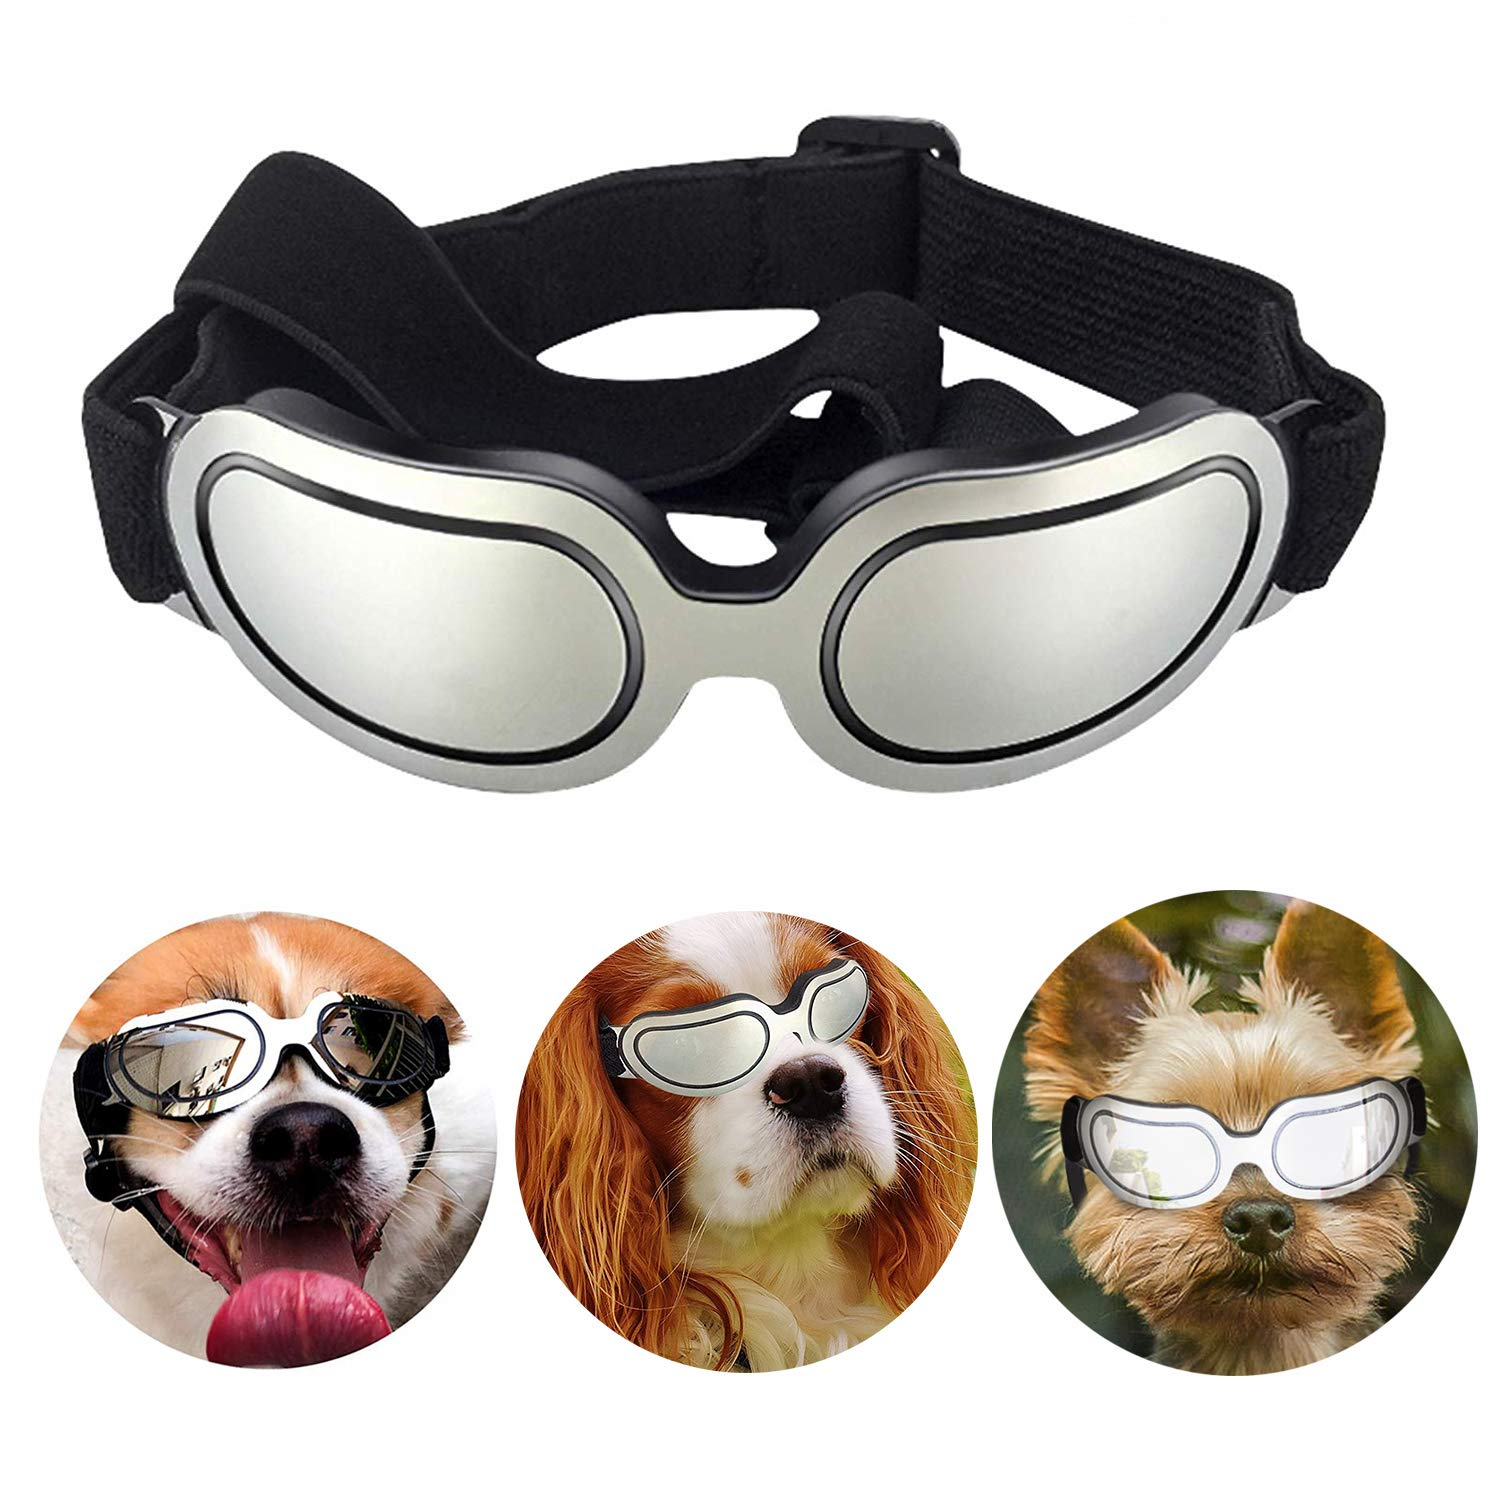 Loggipet Dog Sunglasses Pet Goggles Eyewear UV Protection Waterproof Pet Sun Glasses Adjustable Strap for Dogs Puppies Cats